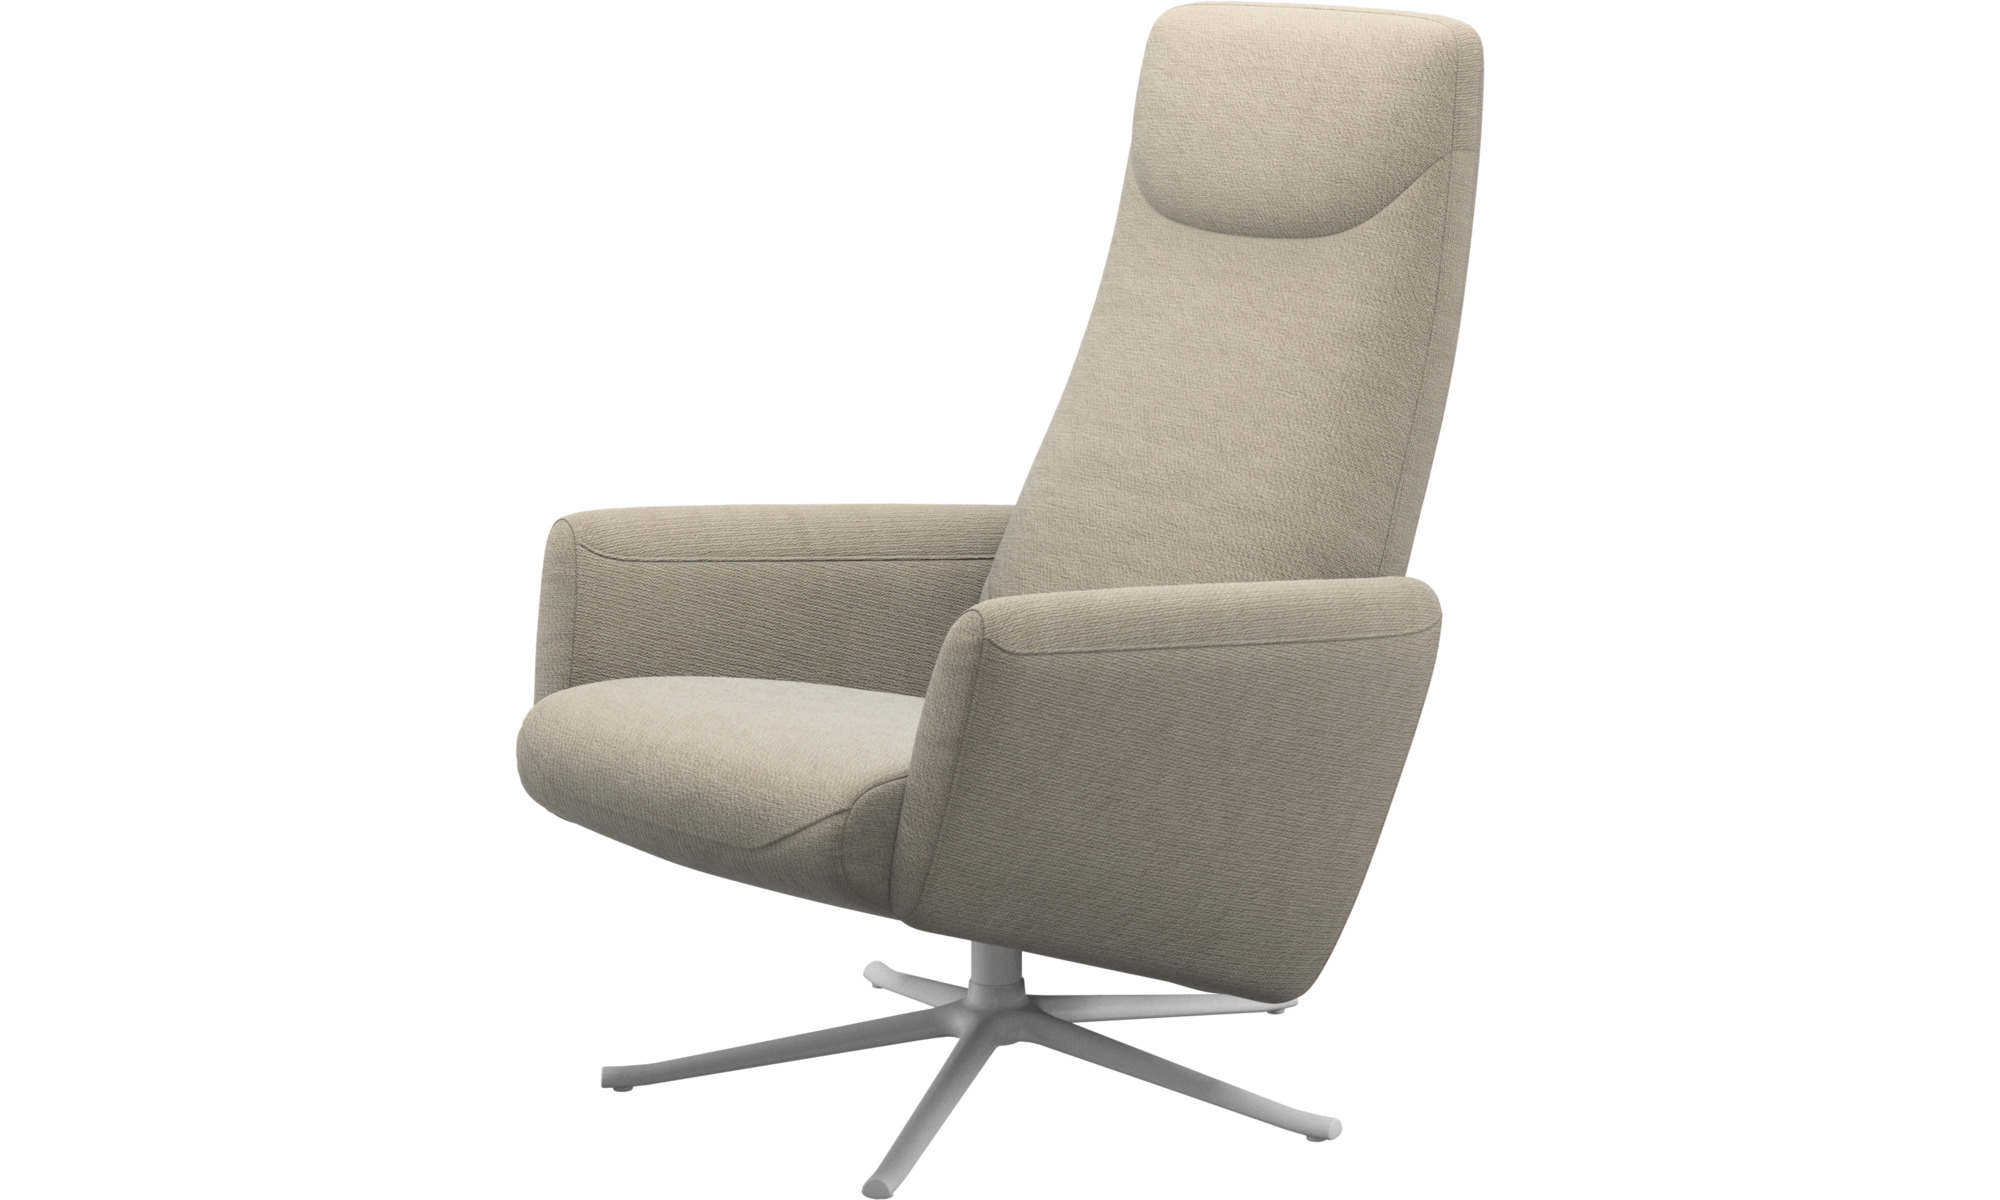 Recliners - Lucca recliner with swivel function - Beige - Fabric